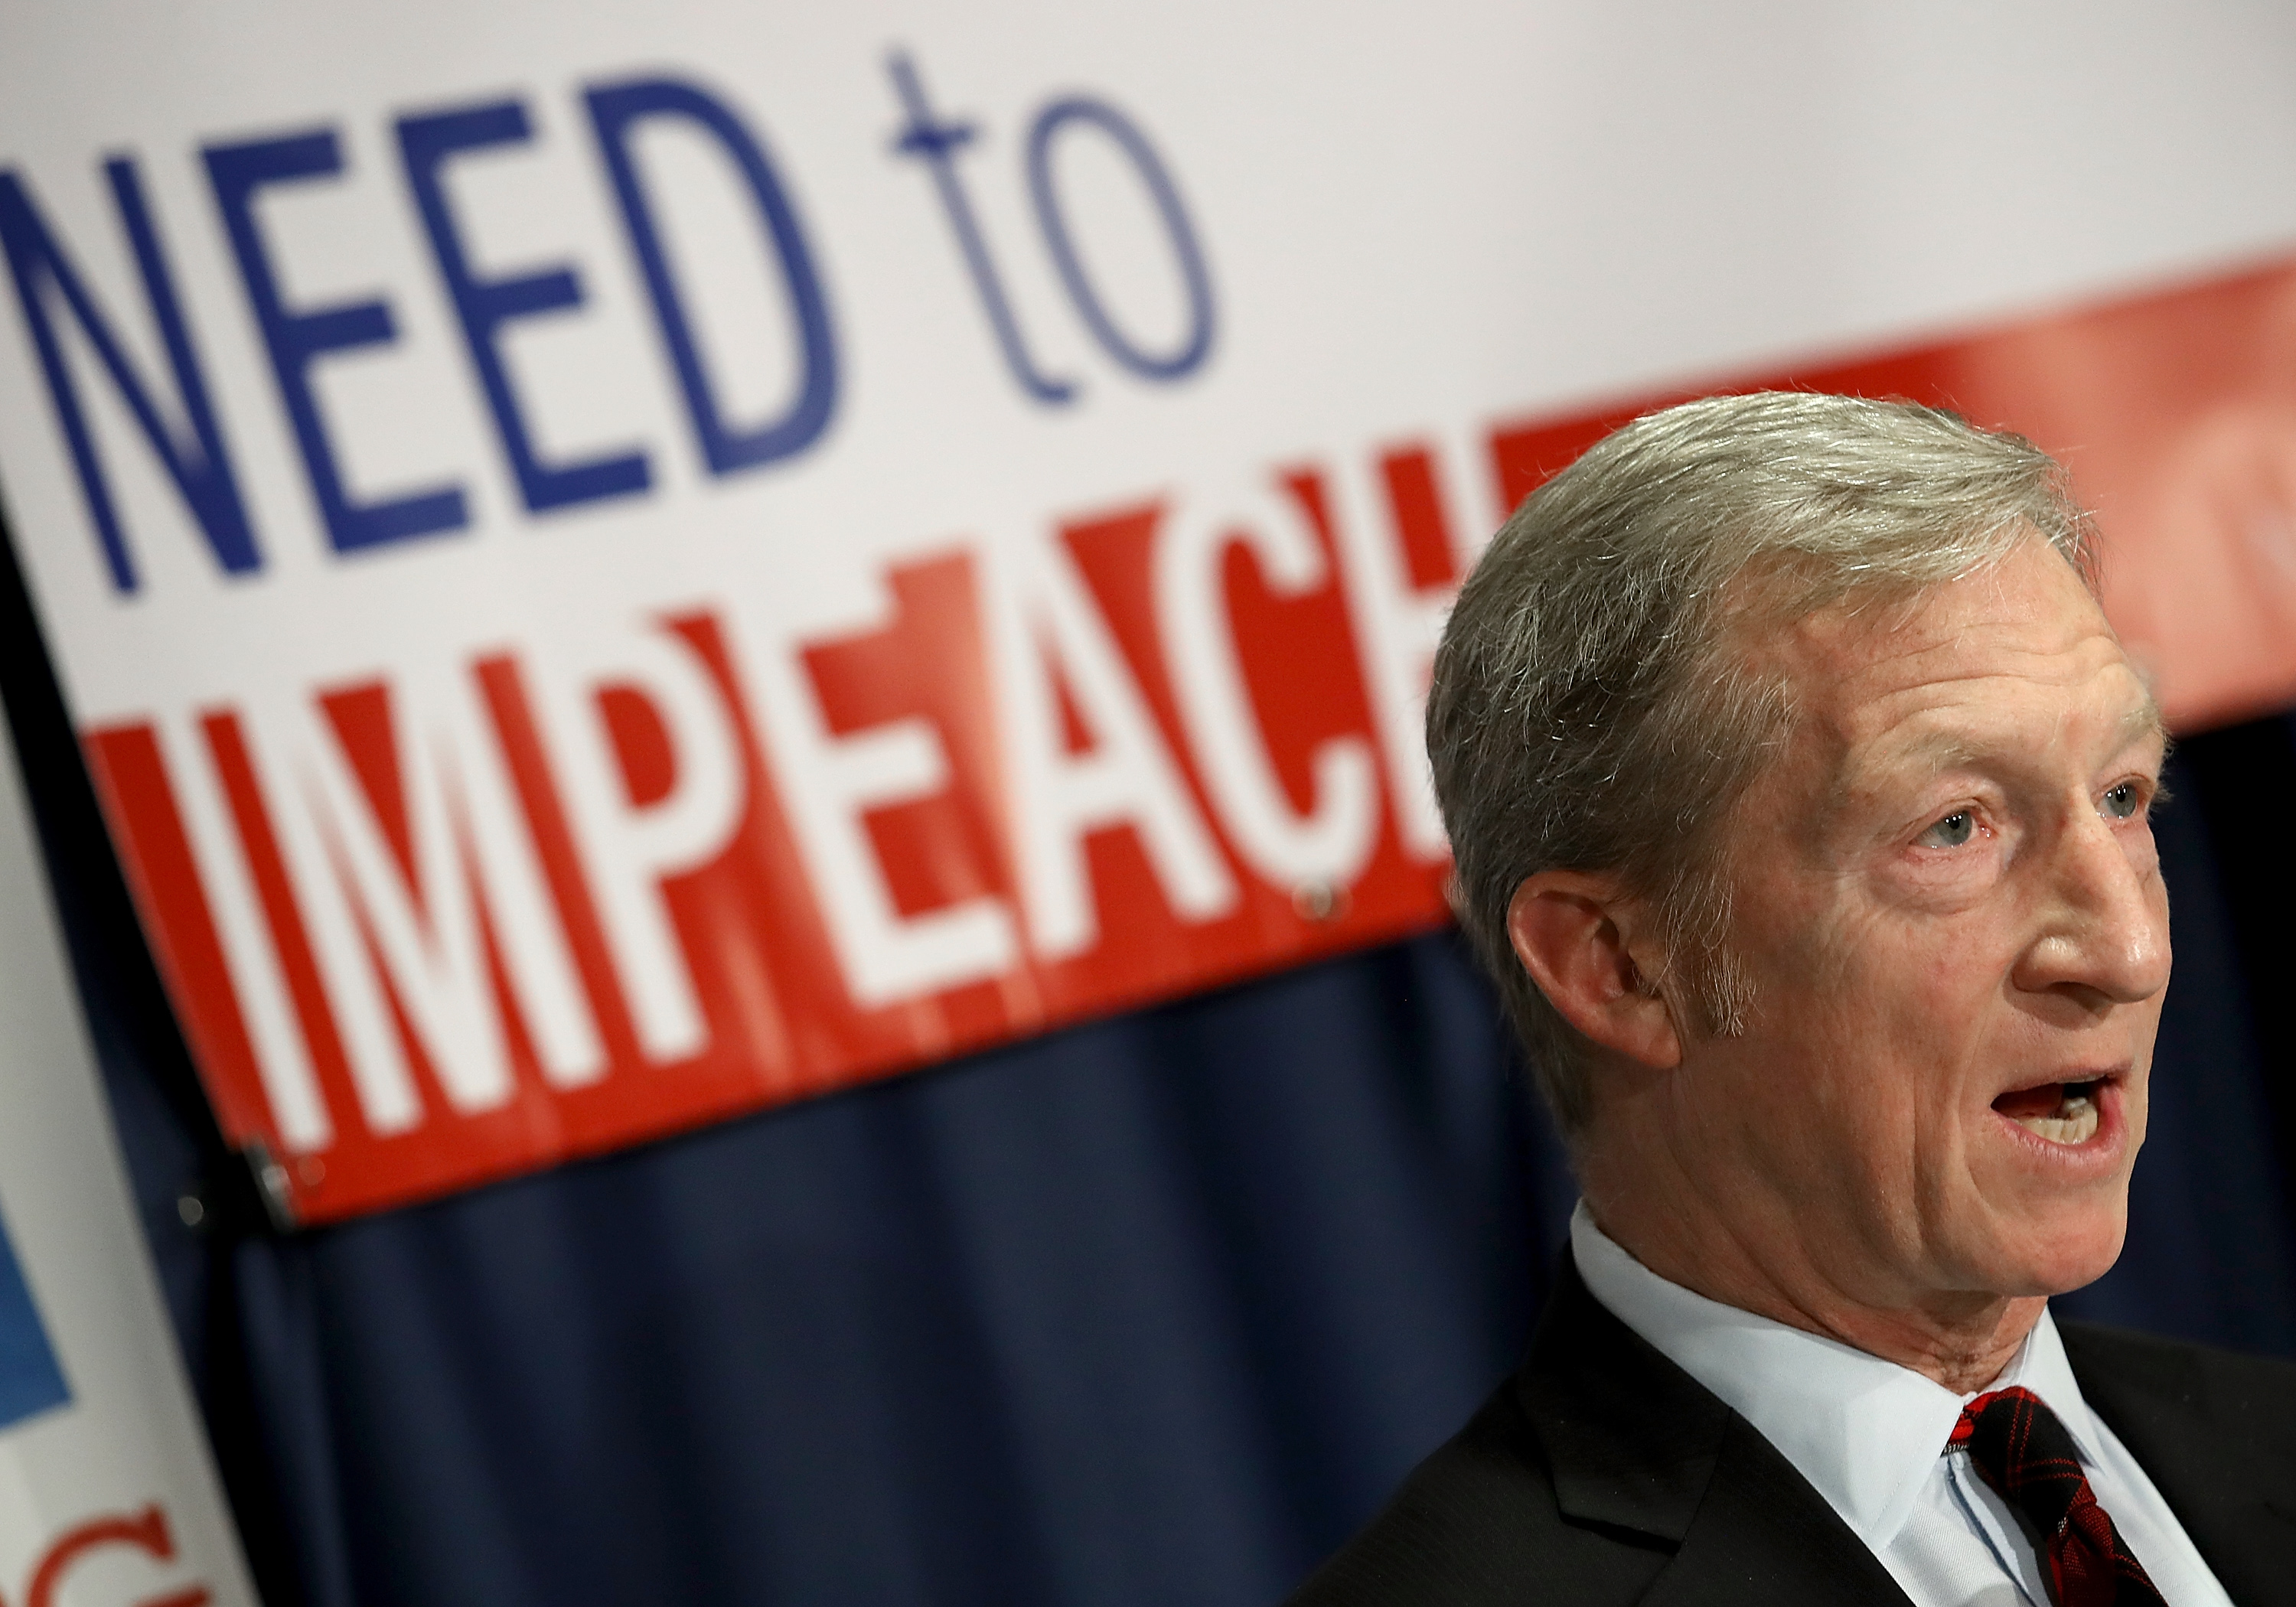 Billionaire hedge fund manager and philanthropist Tom Steyer speaks during a press conference at the National Press Club December 6, 2017 in Washington, DC. Steyer, founder of the  Need To Impeach  initiative, presented legal grounds calling for the impeachment investigation of U.S. President Donald Trump during the press conference.